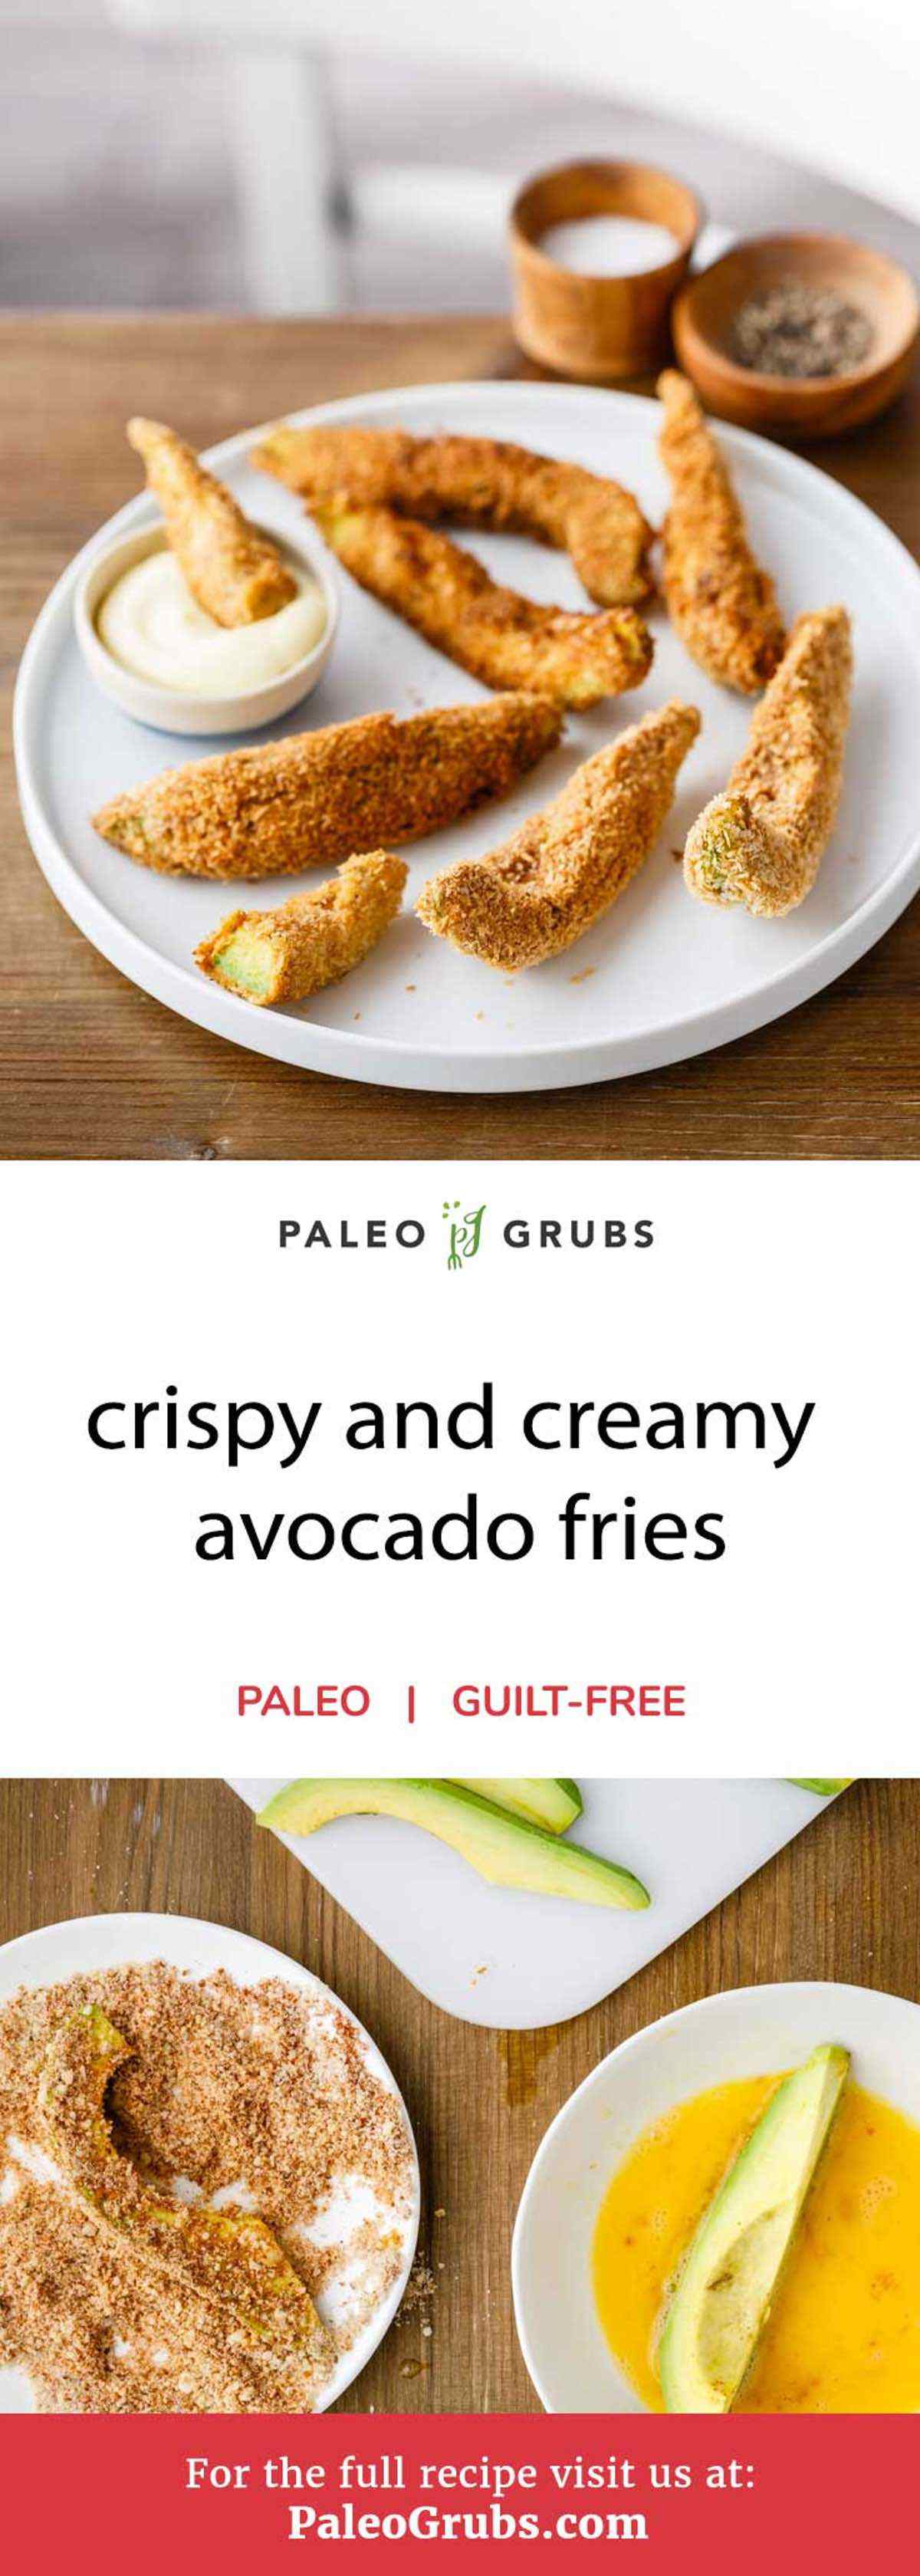 Pass on the high-carb, trans-fat loaded French fries and give these wonderfully crispy and creamy avocado fries a try instead. Sliced pieces of avocado are dipped in beaten eggs before being coated with a delightful mixture of almond flour, salt, smoked paprika, chili flakes, and shredded coconut. They are fried to create one unbelievably tasty finger food.